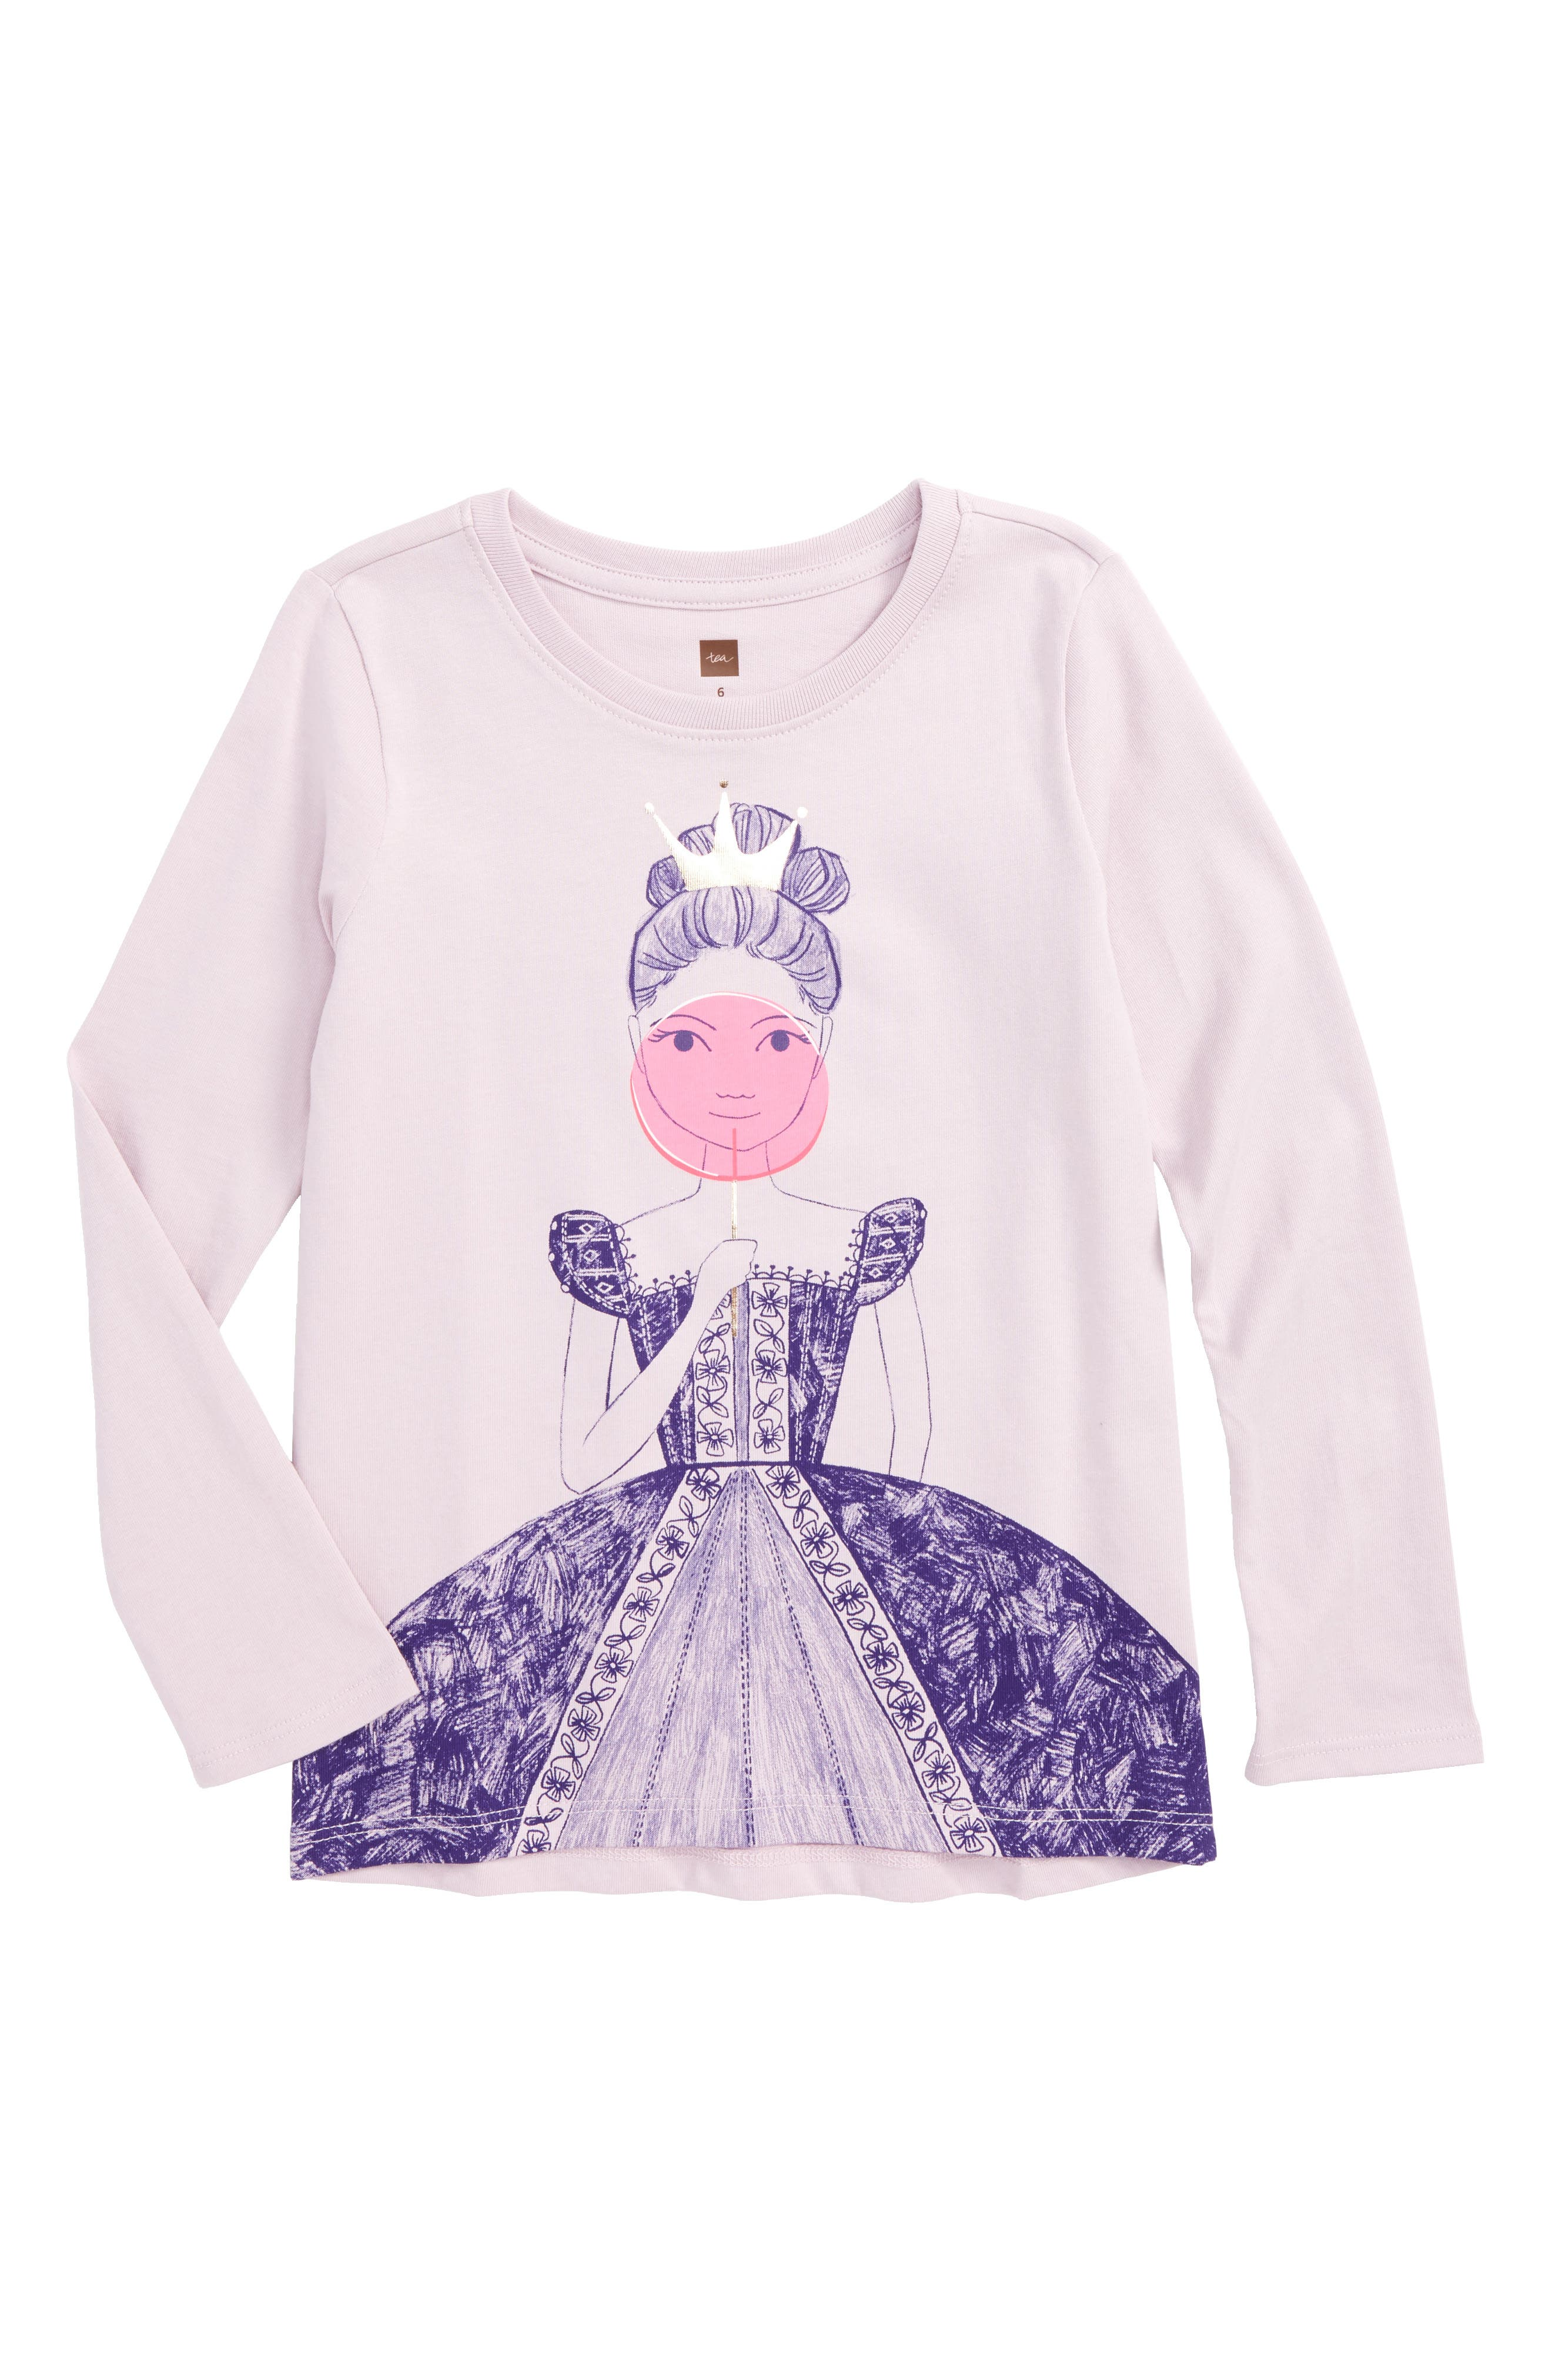 Alternate Image 1 Selected - Tea Collection Queen of Scots Graphic Tee (Toddler Girls, Little Girls & Big Girls)